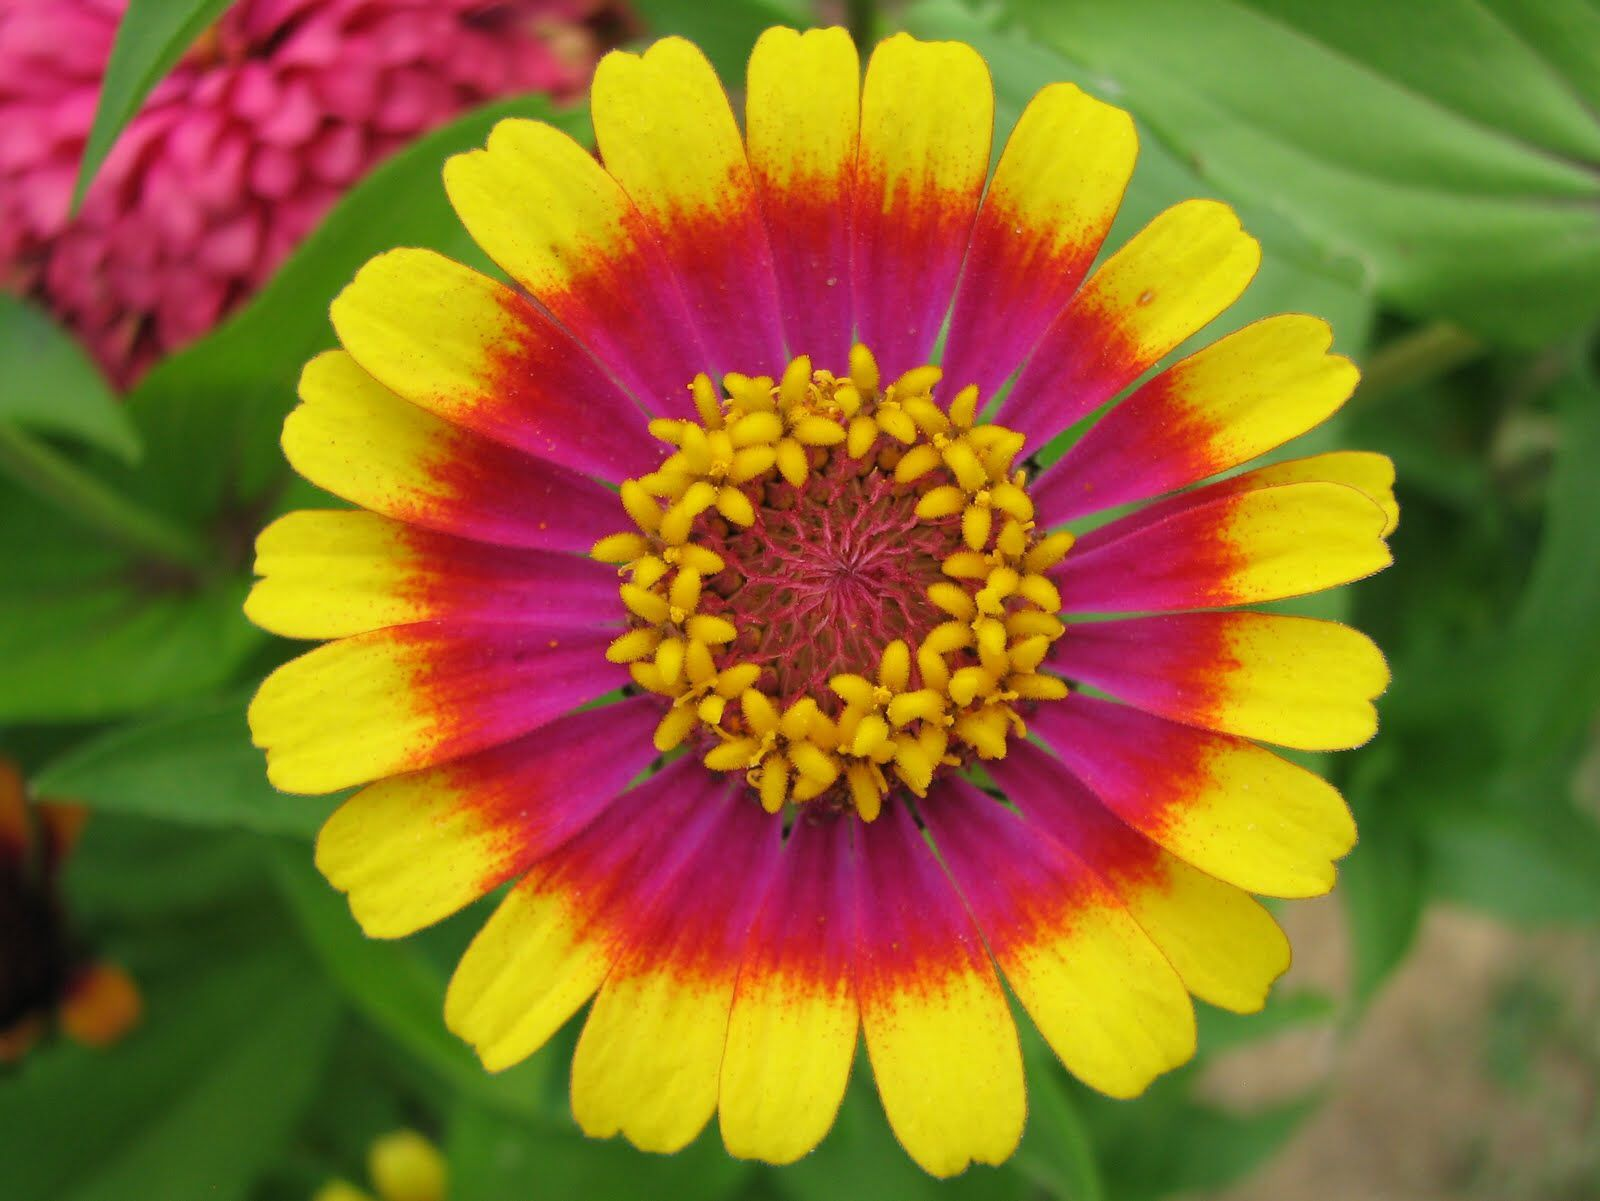 Zinnia Flower Represents Thoughts Of Friends Zinnia Flowers Zinnias Flower Seeds